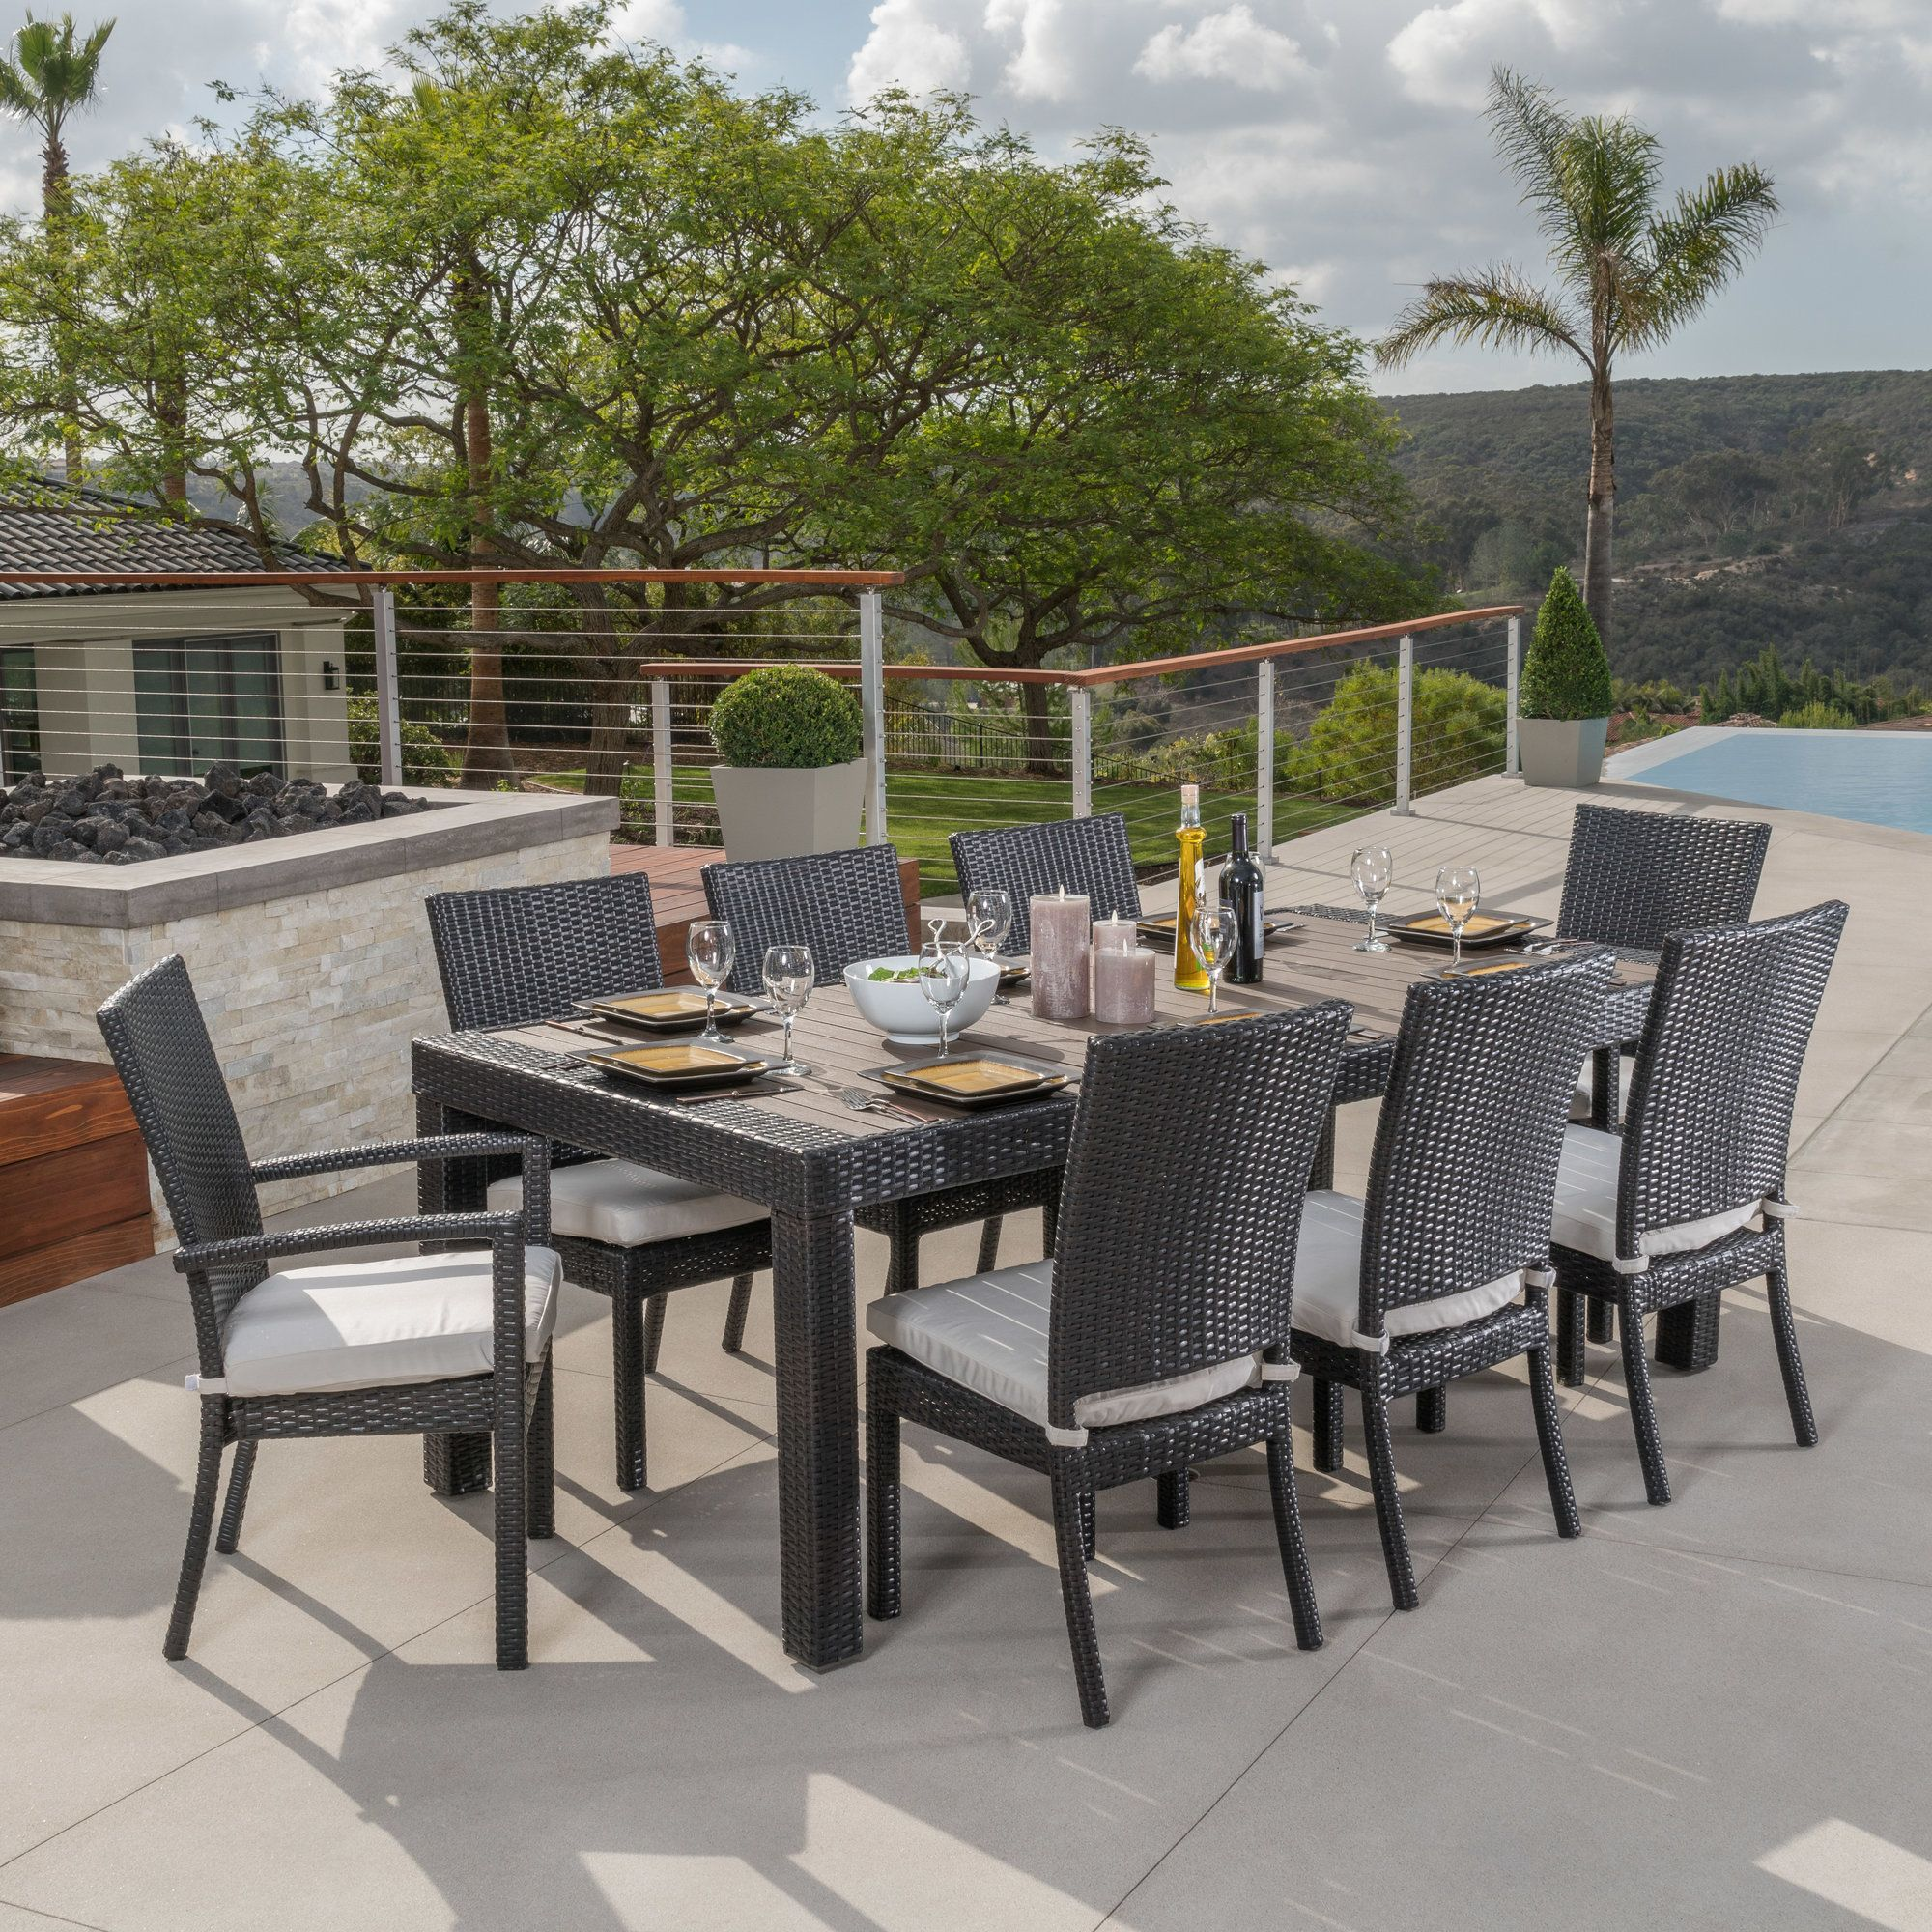 9 Piece Outdoor Dining Set Northridge 9 Piece Outdoor Dining Set With Cushion Products